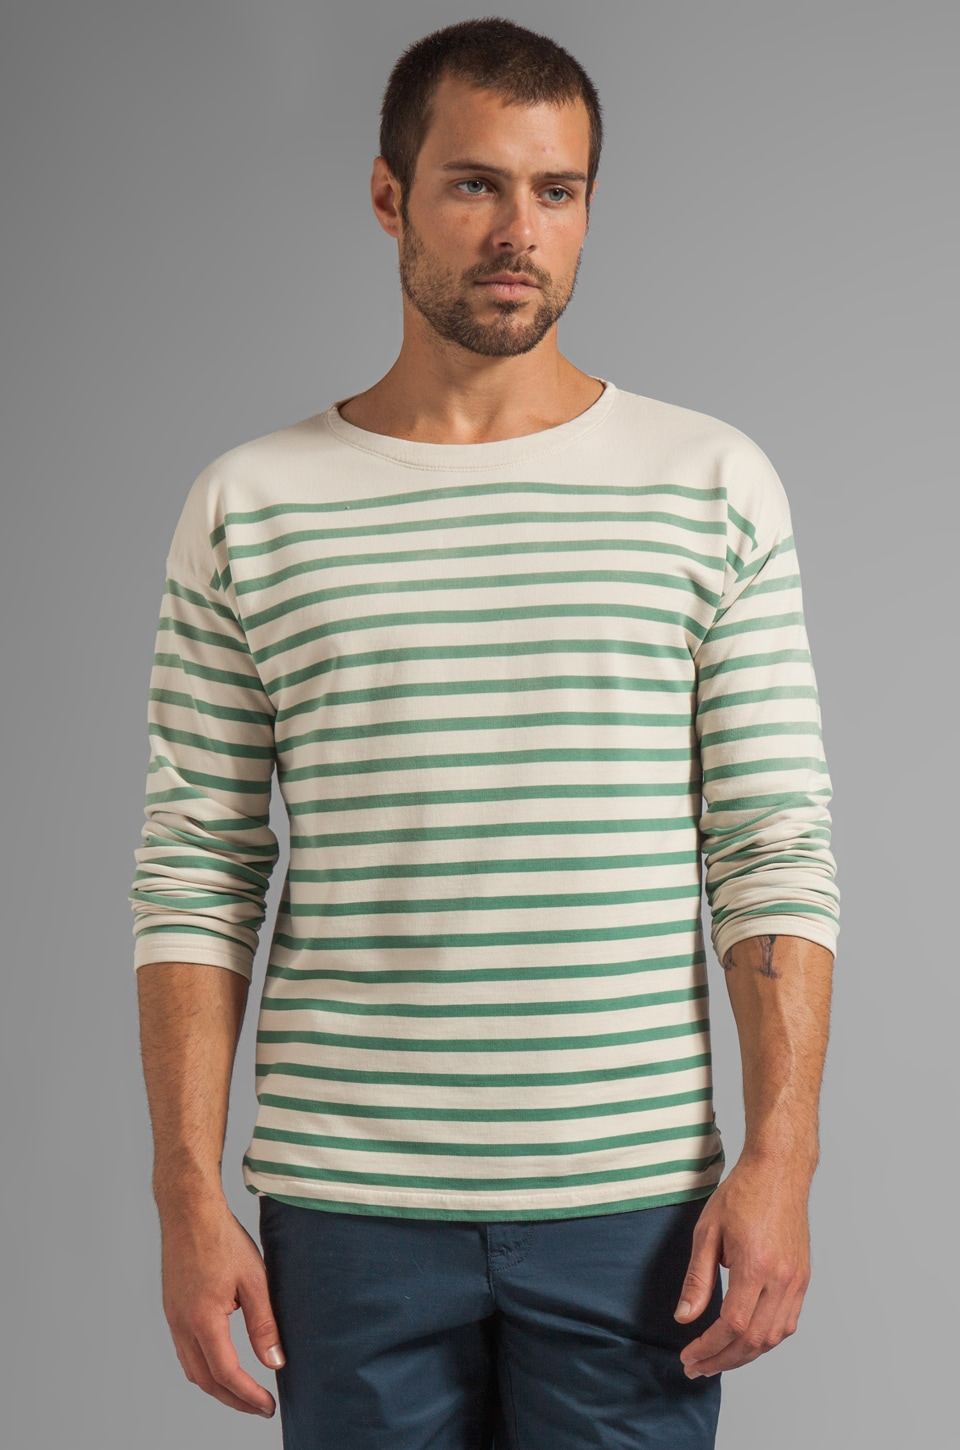 Scotch & Soda Striped L/S Sailor Shirt in Green